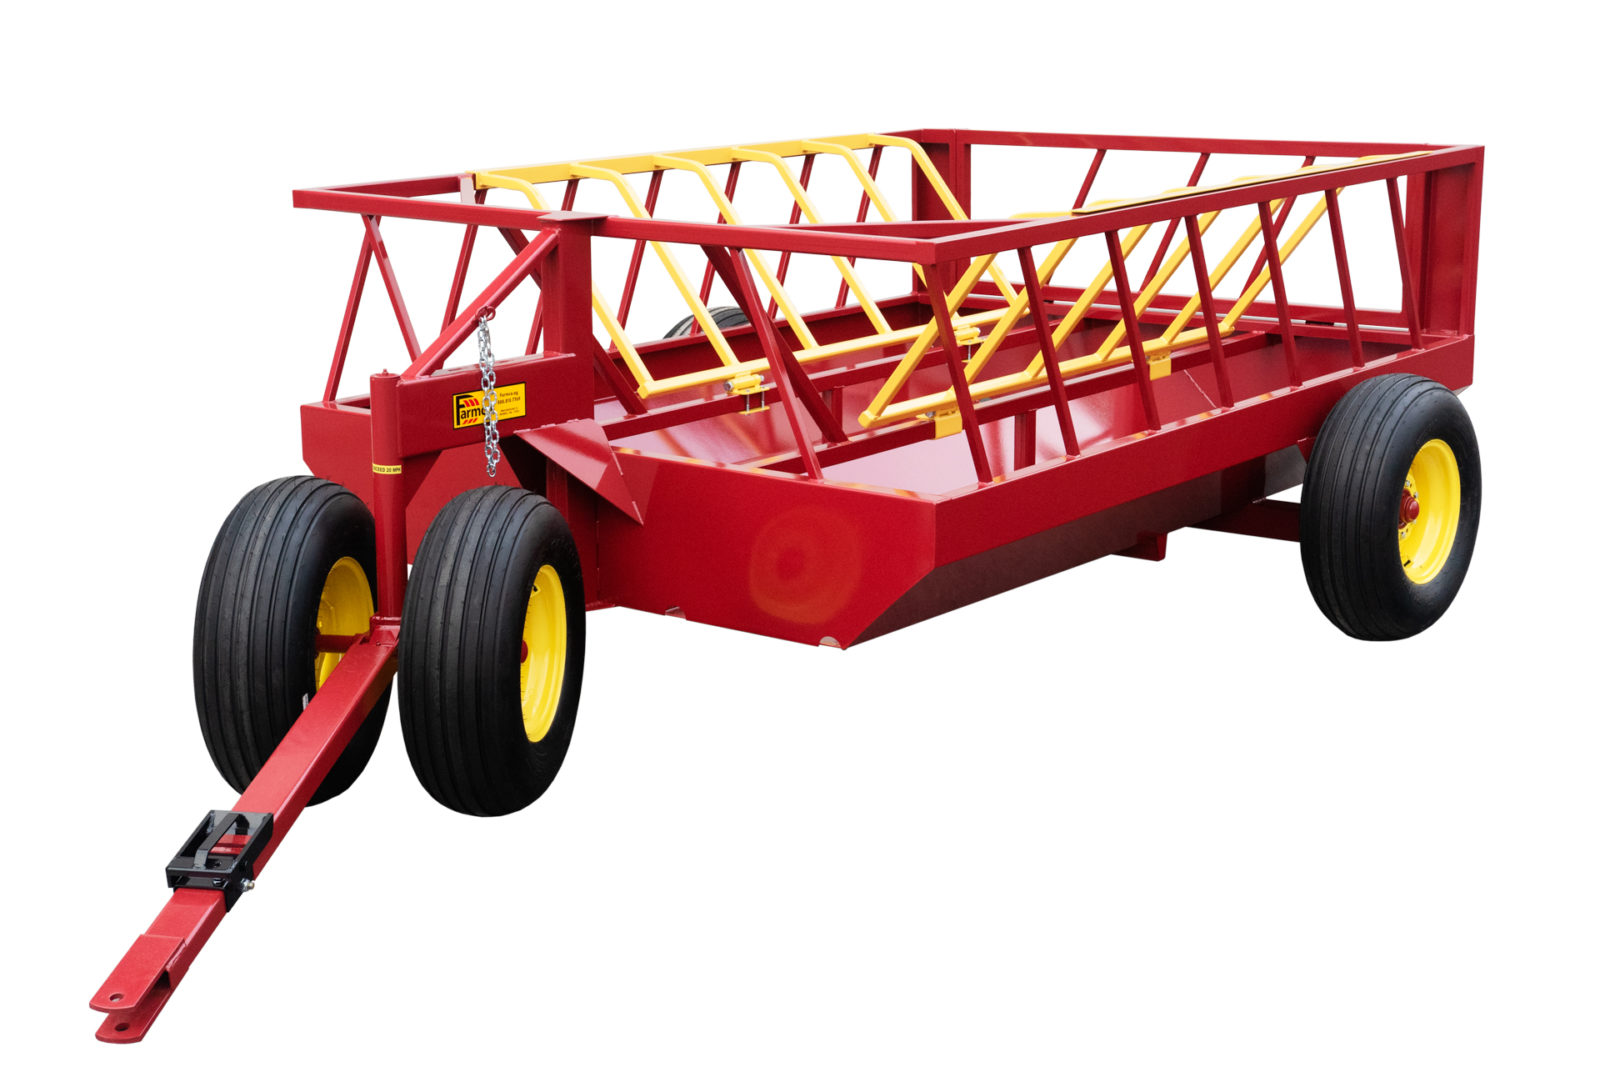 livestock equipment on wheels